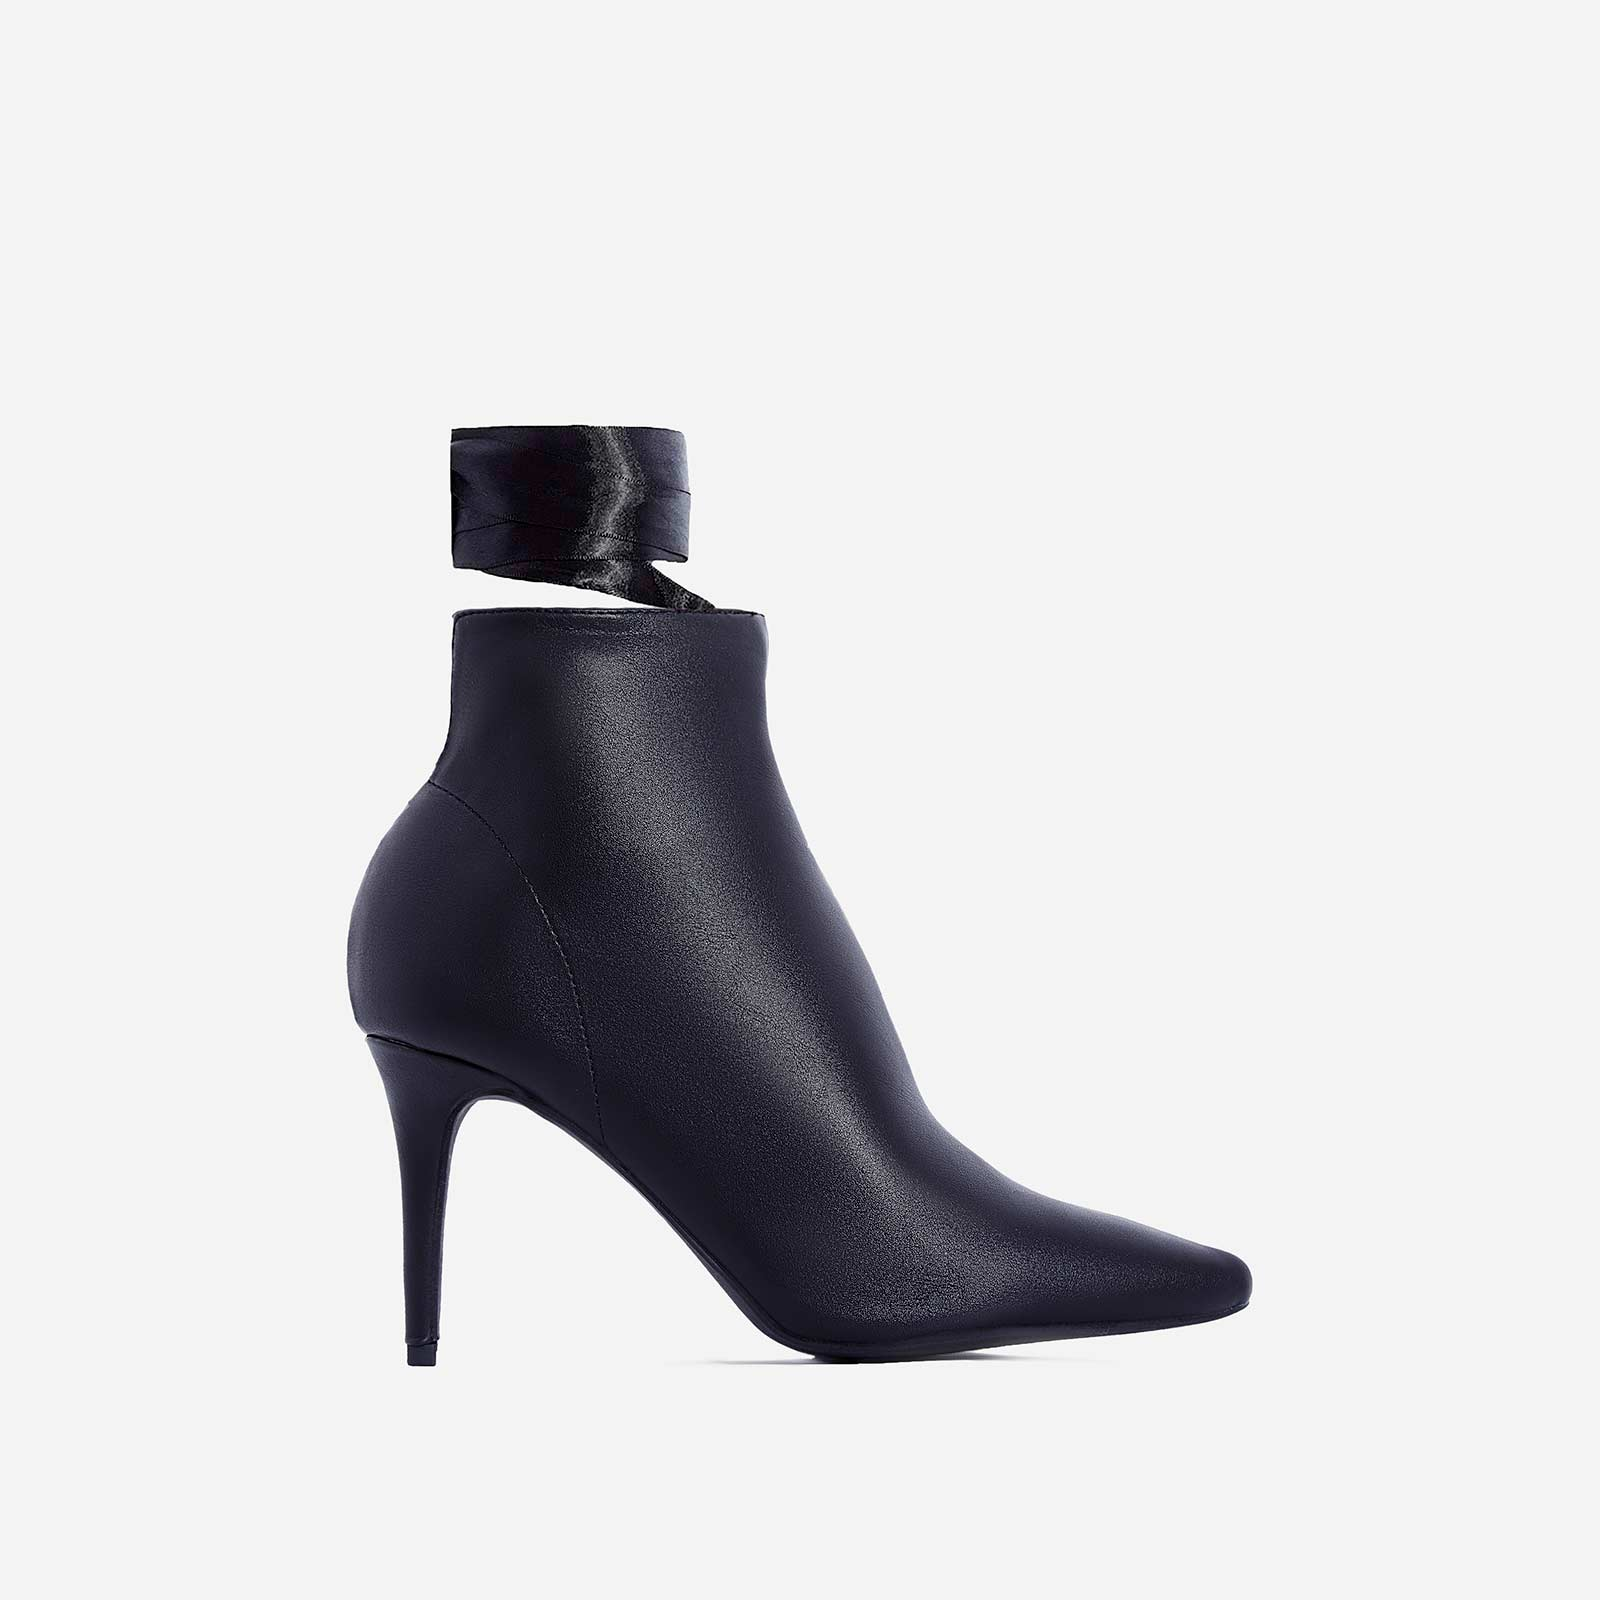 Becca Lace Up Ankle Boot In Black Faux Leather